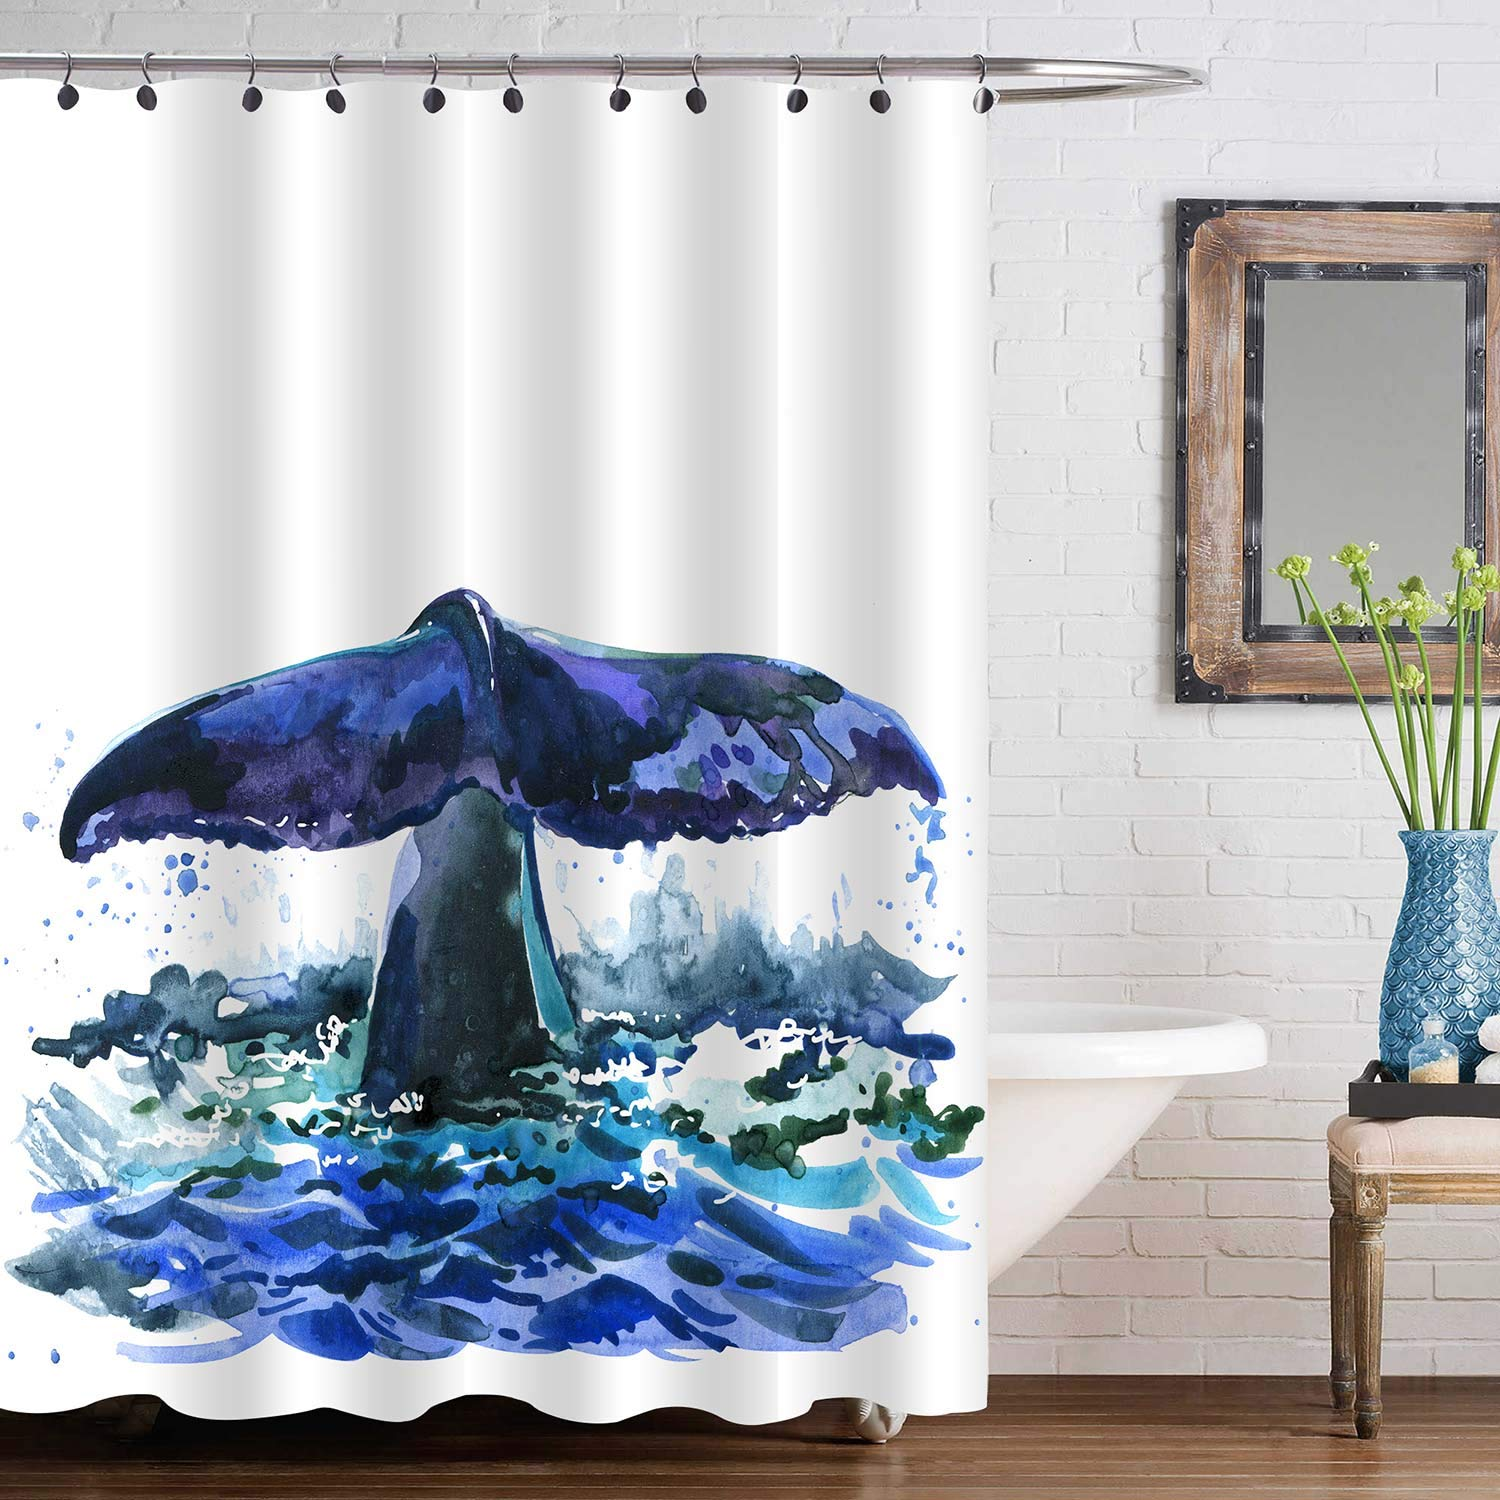 """MitoVilla Whale Tail Shower Curtain, Watercolor Ocean Wildlife Bathtub Shower Decorations for Animal Lovers, Baby, Kids and Children Gifts, Navy Blue, 72"""" W x 72"""" L Standard for Bathroom Shower Tub"""